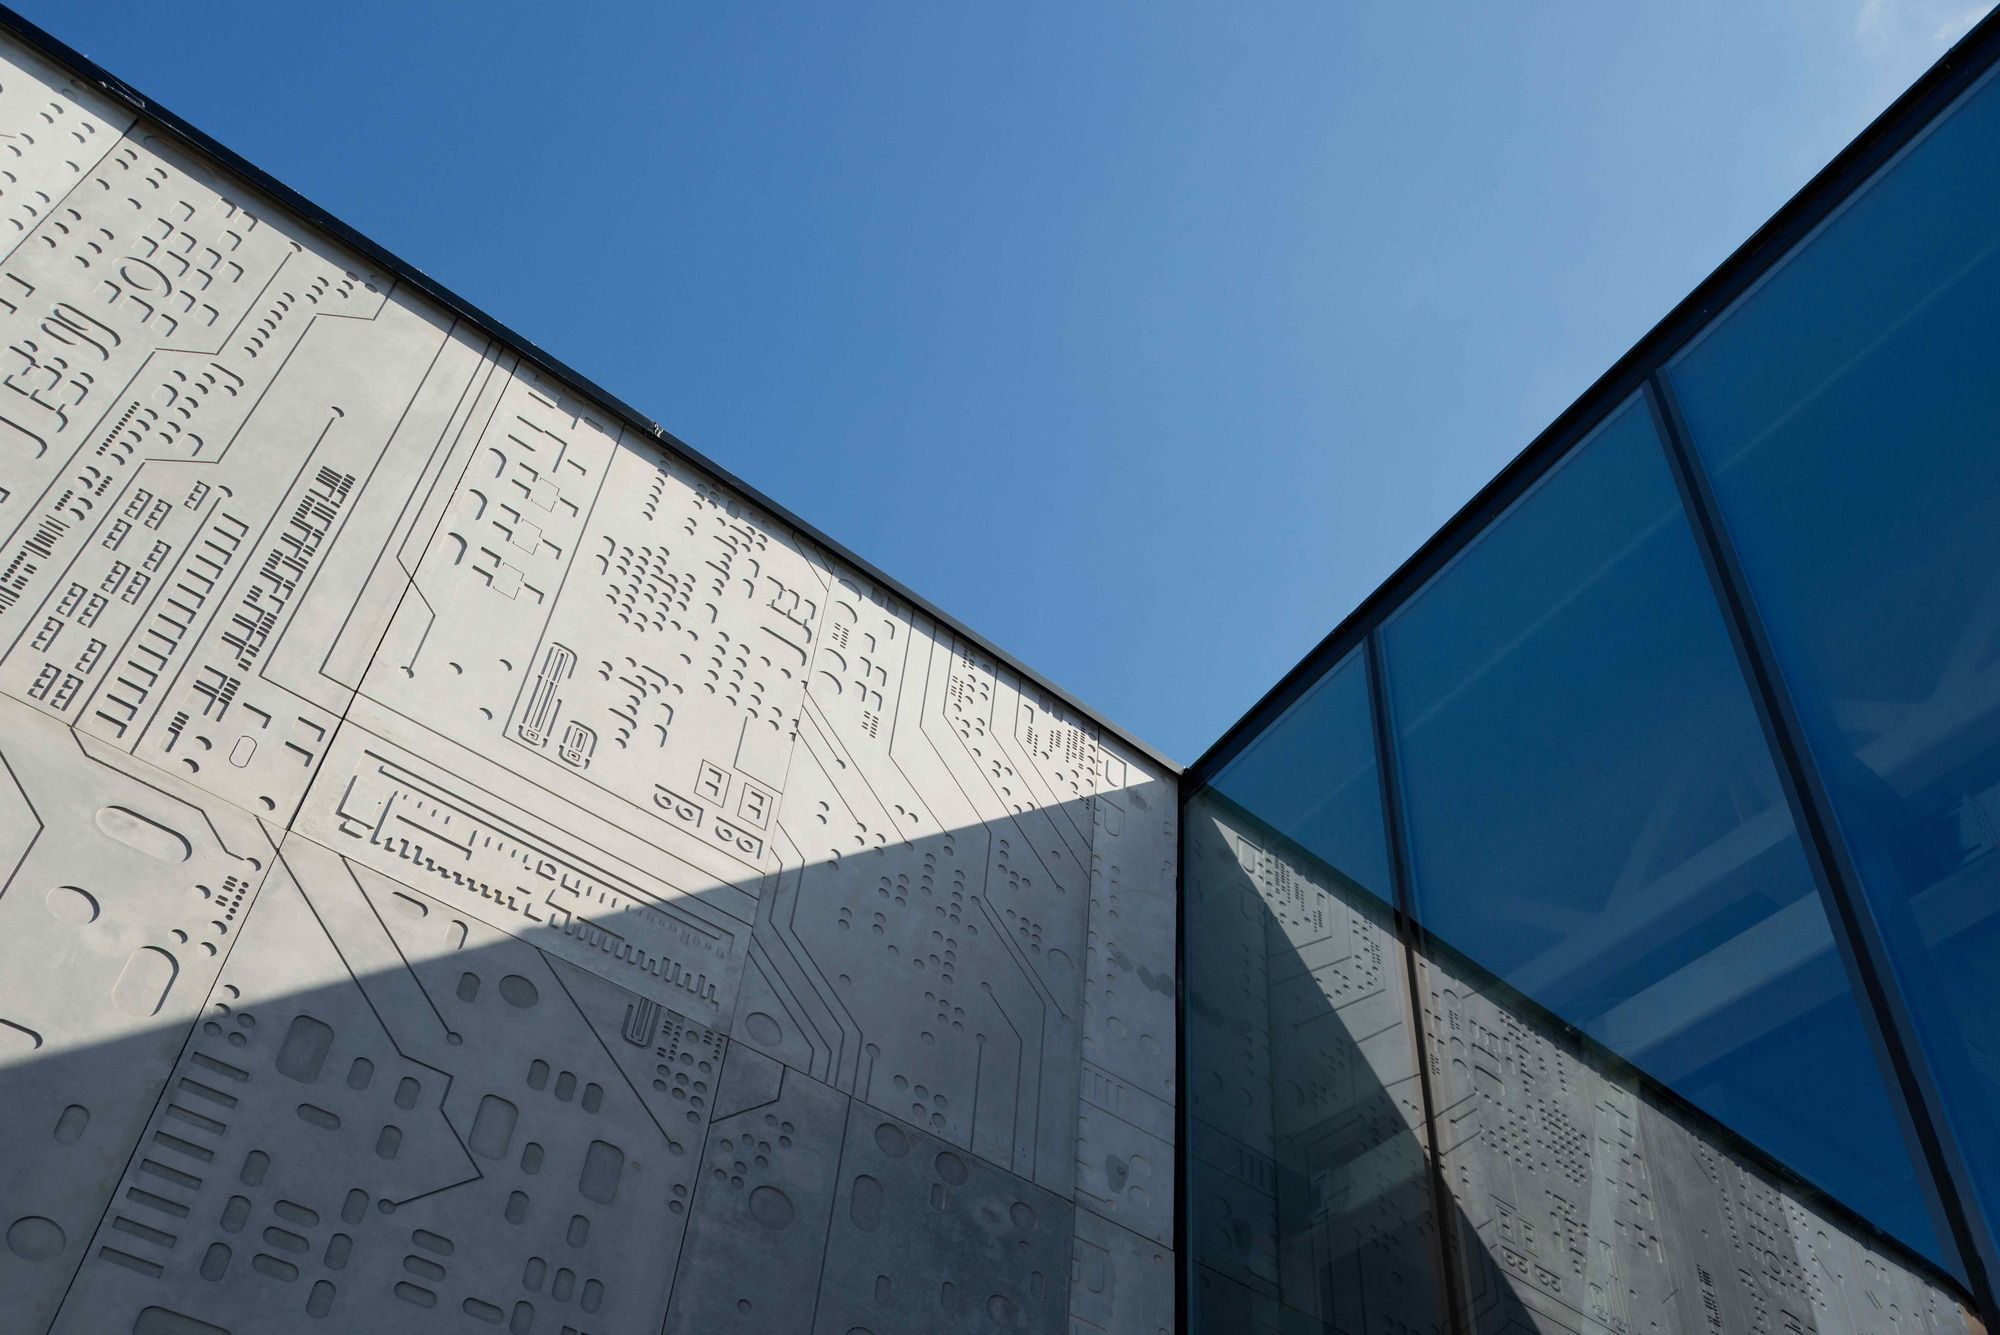 Architecture Bureau Wall : Gallery of pavilion dit [department of information technology